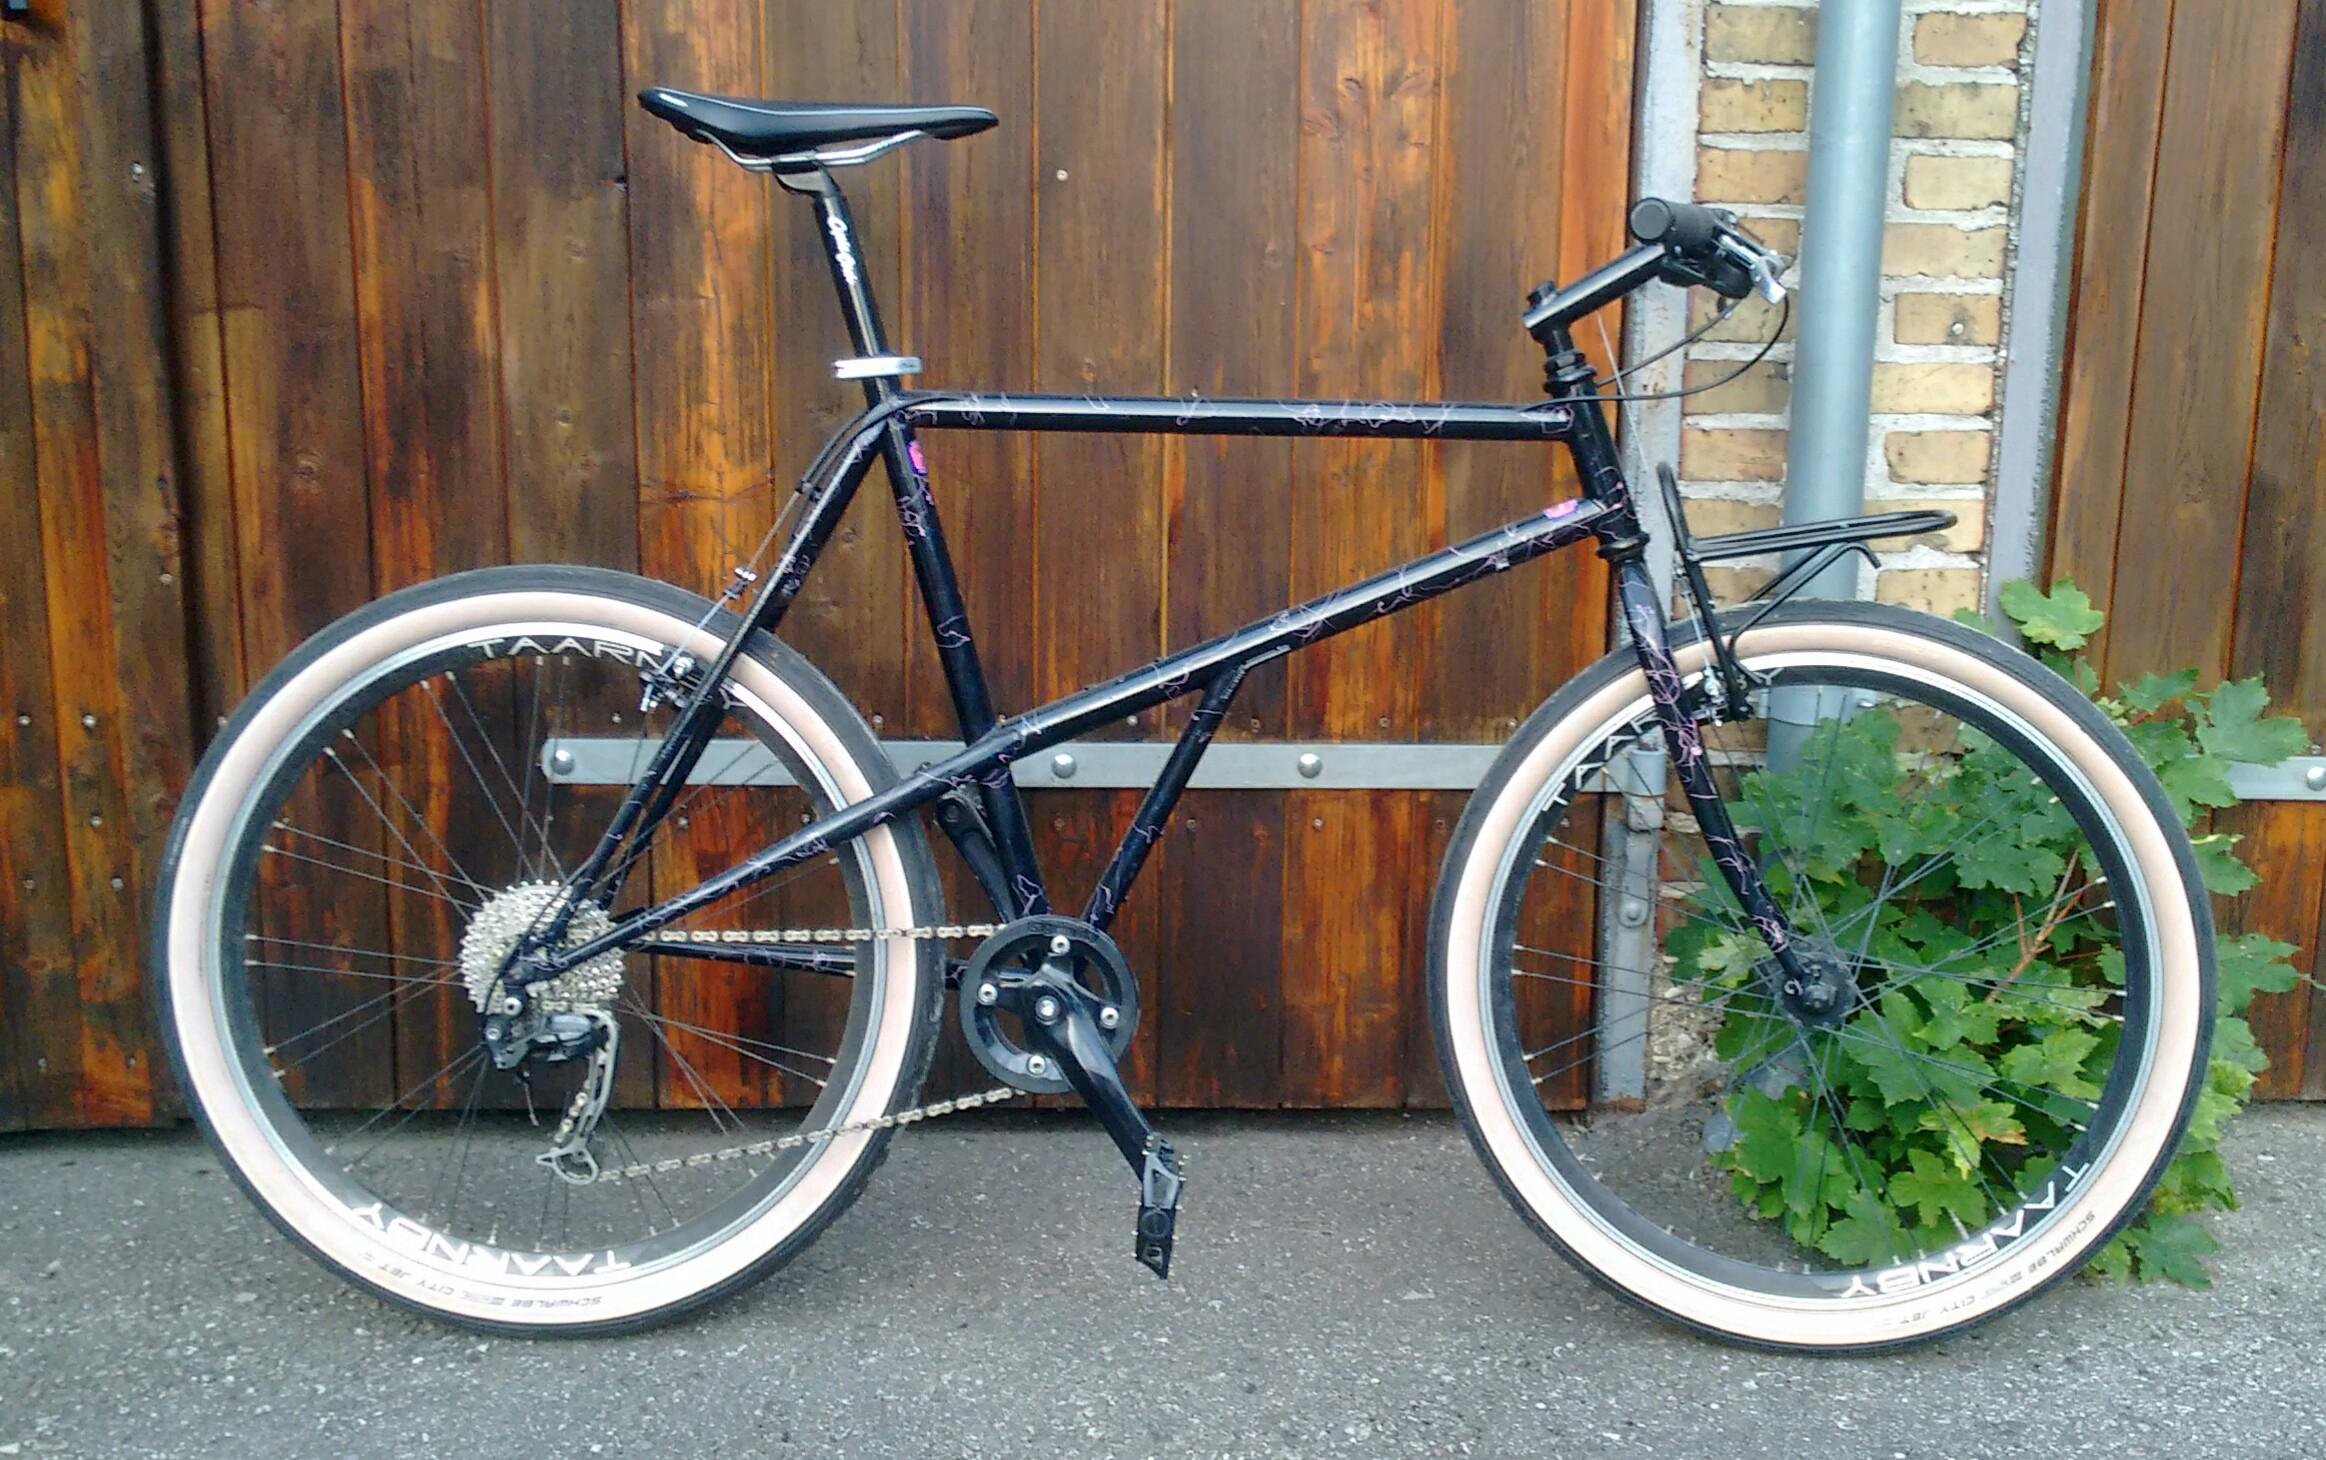 Beginners - Tips & Concepts for Gravel Bike Setup - Gravel Cyclist: The Gravel Cycling Experience